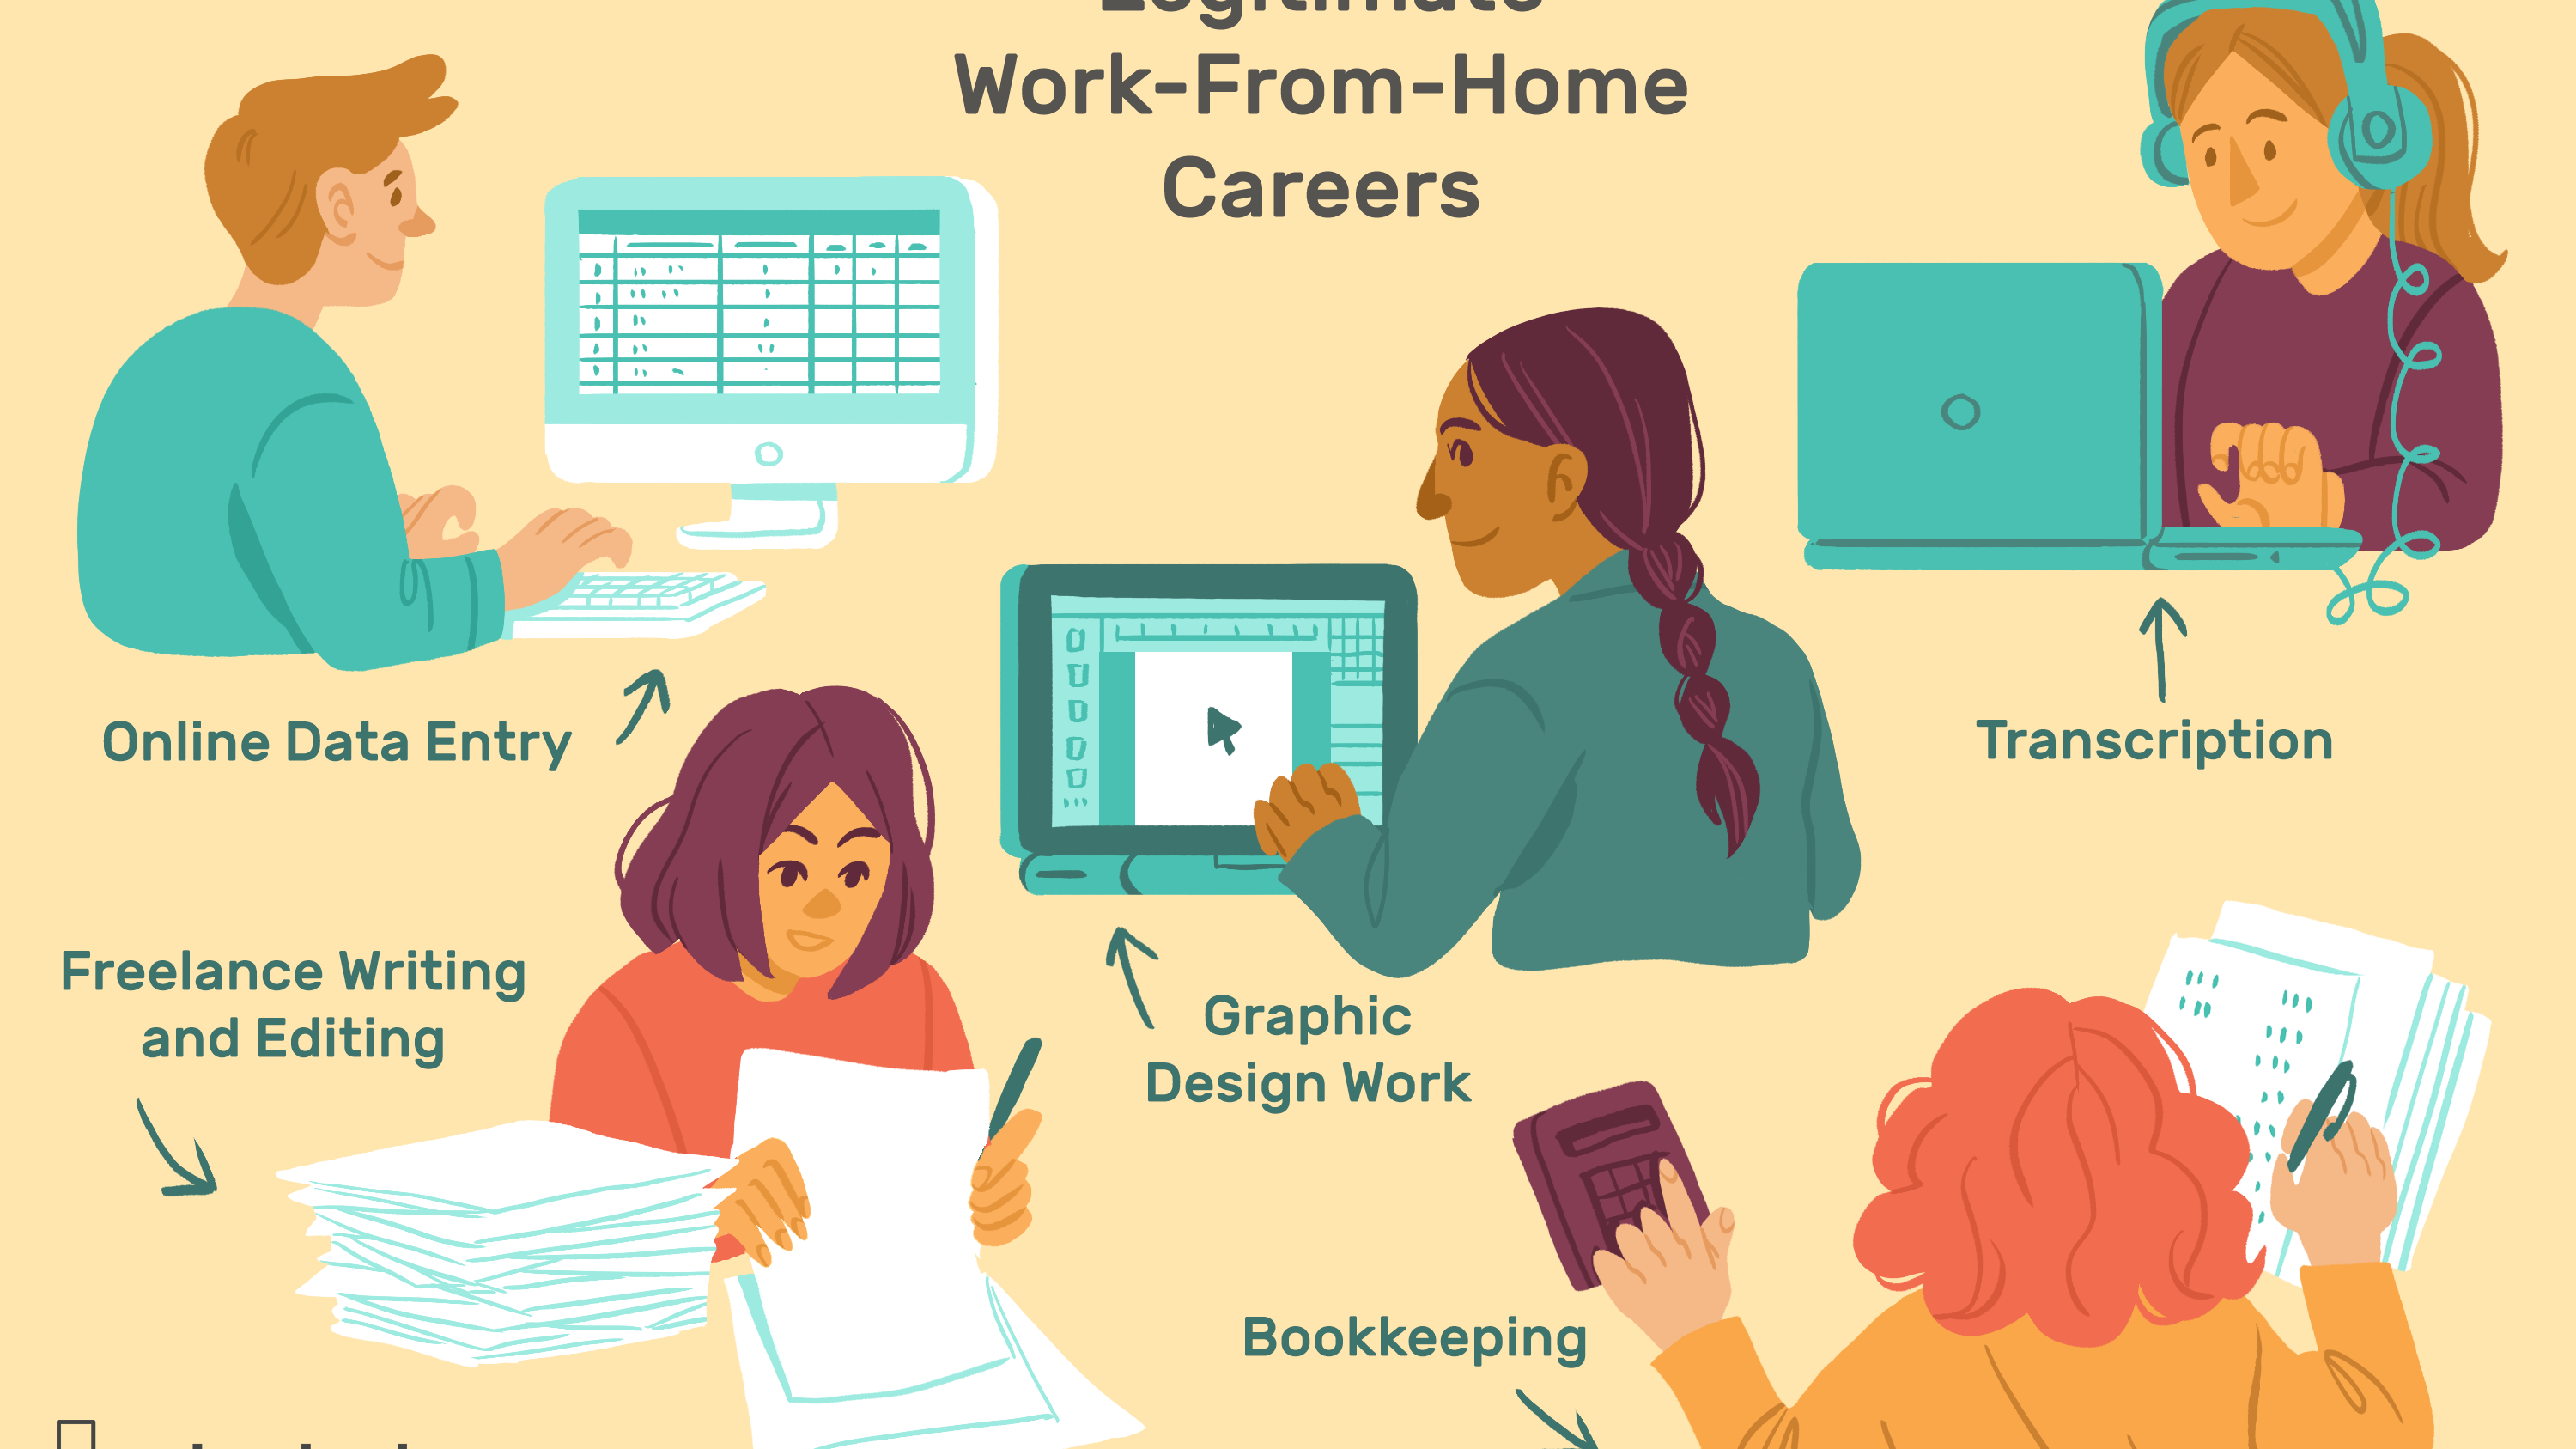 12 Legitimate Work From Home Jobs by Industry